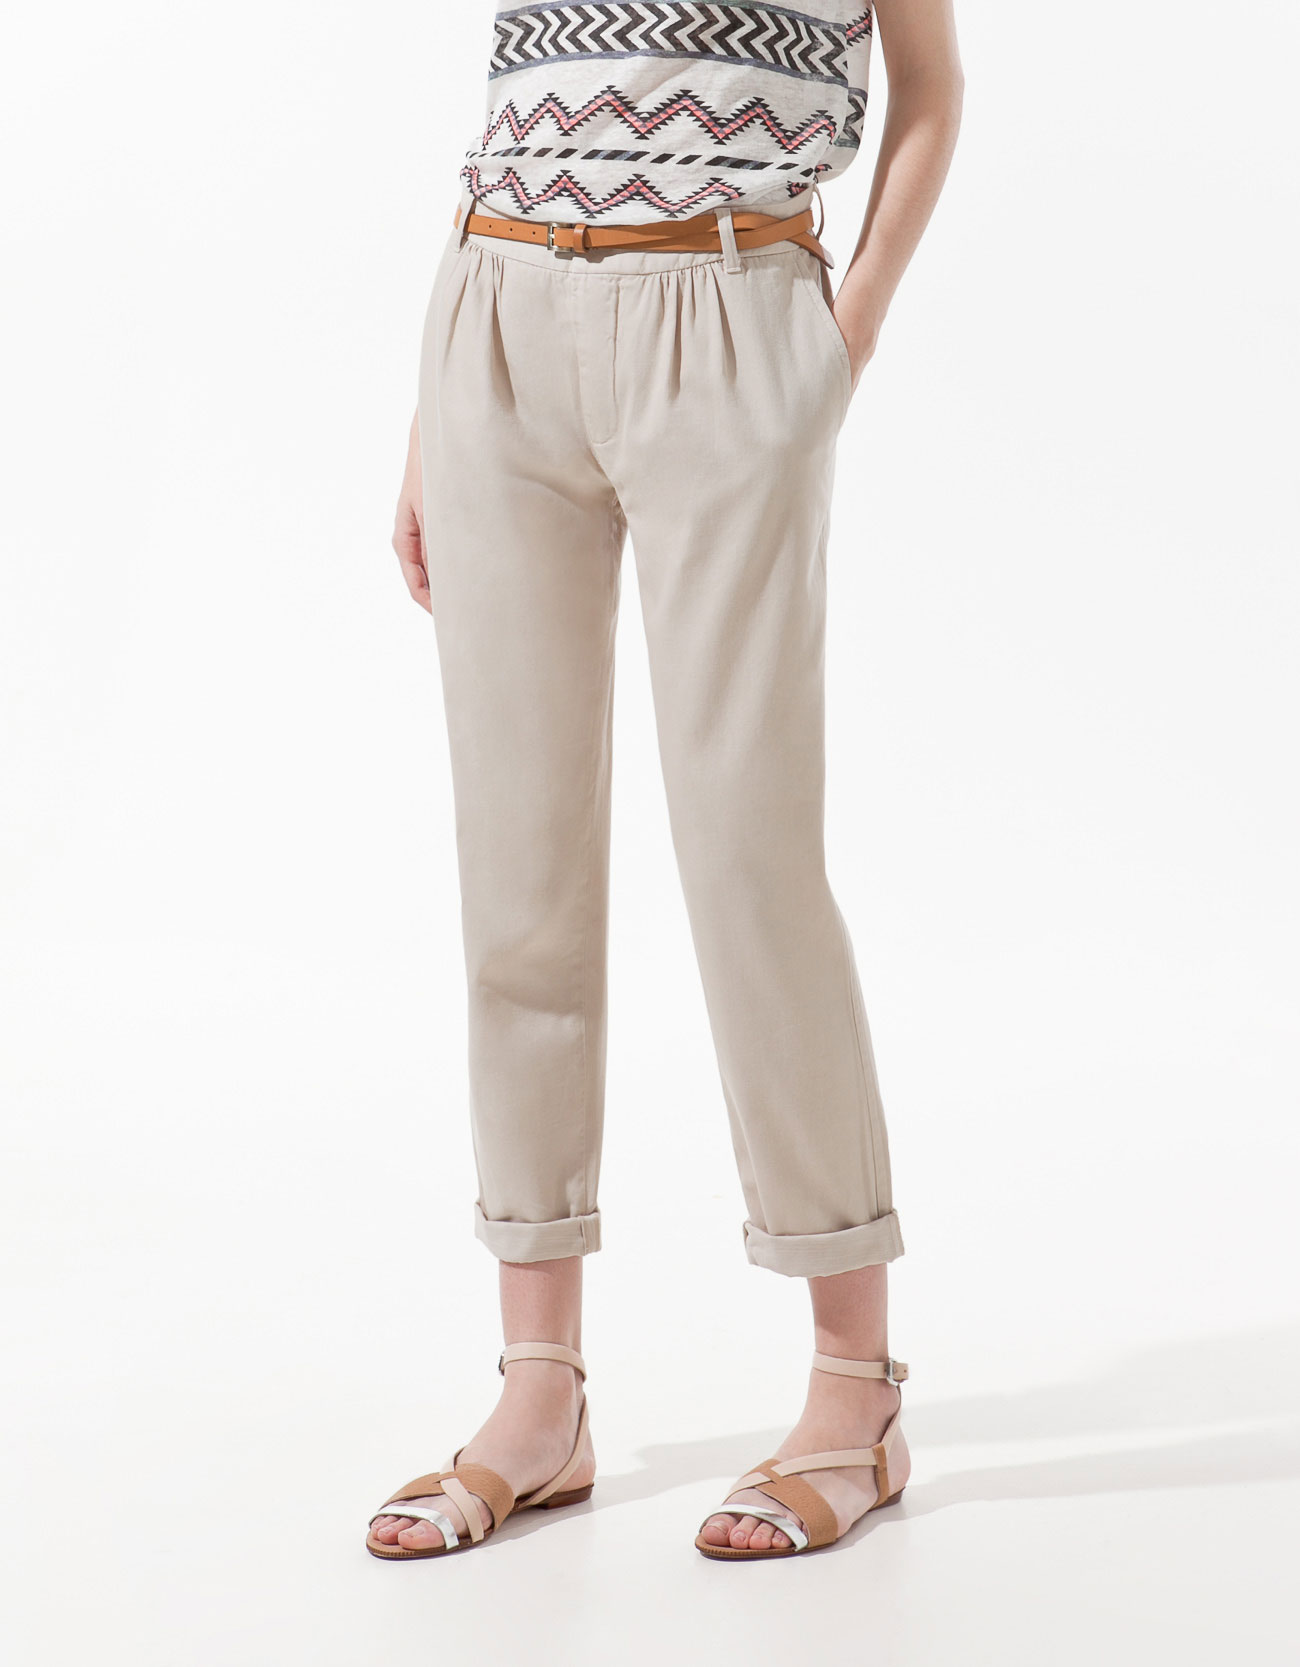 Zara Pleated Trousers in Natural | Lyst